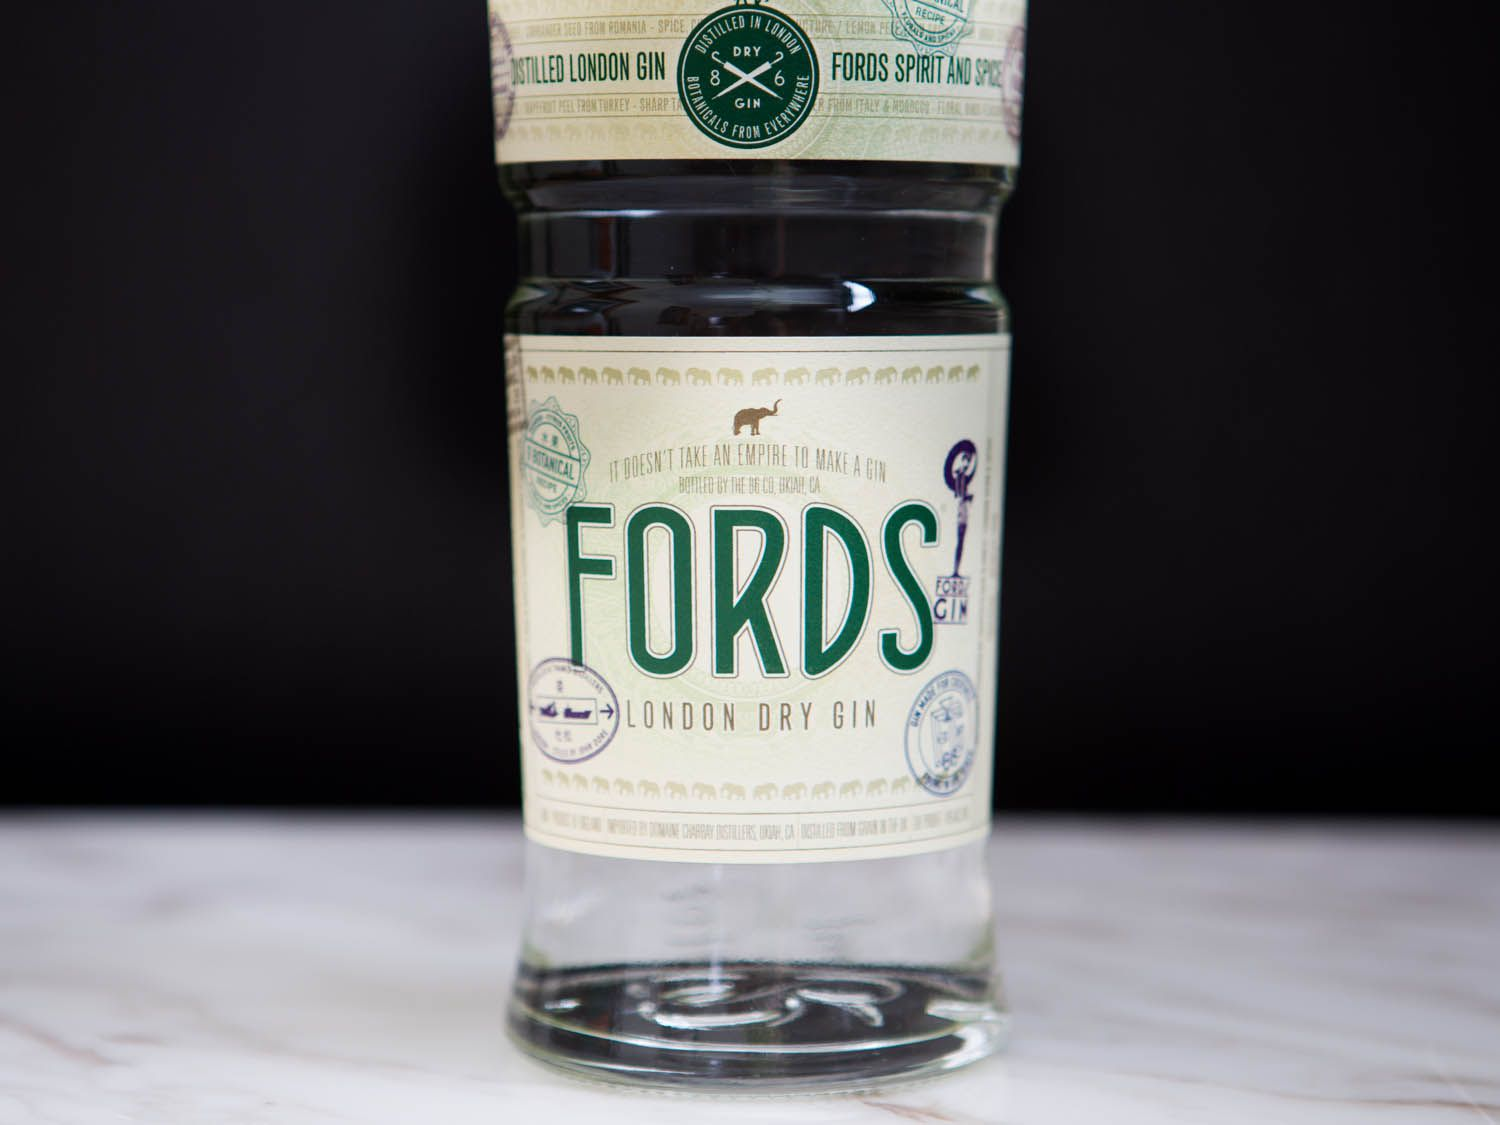 20150324-martini-gin-test-fords-london-dry-gin-vicky-wasik--4.jpg